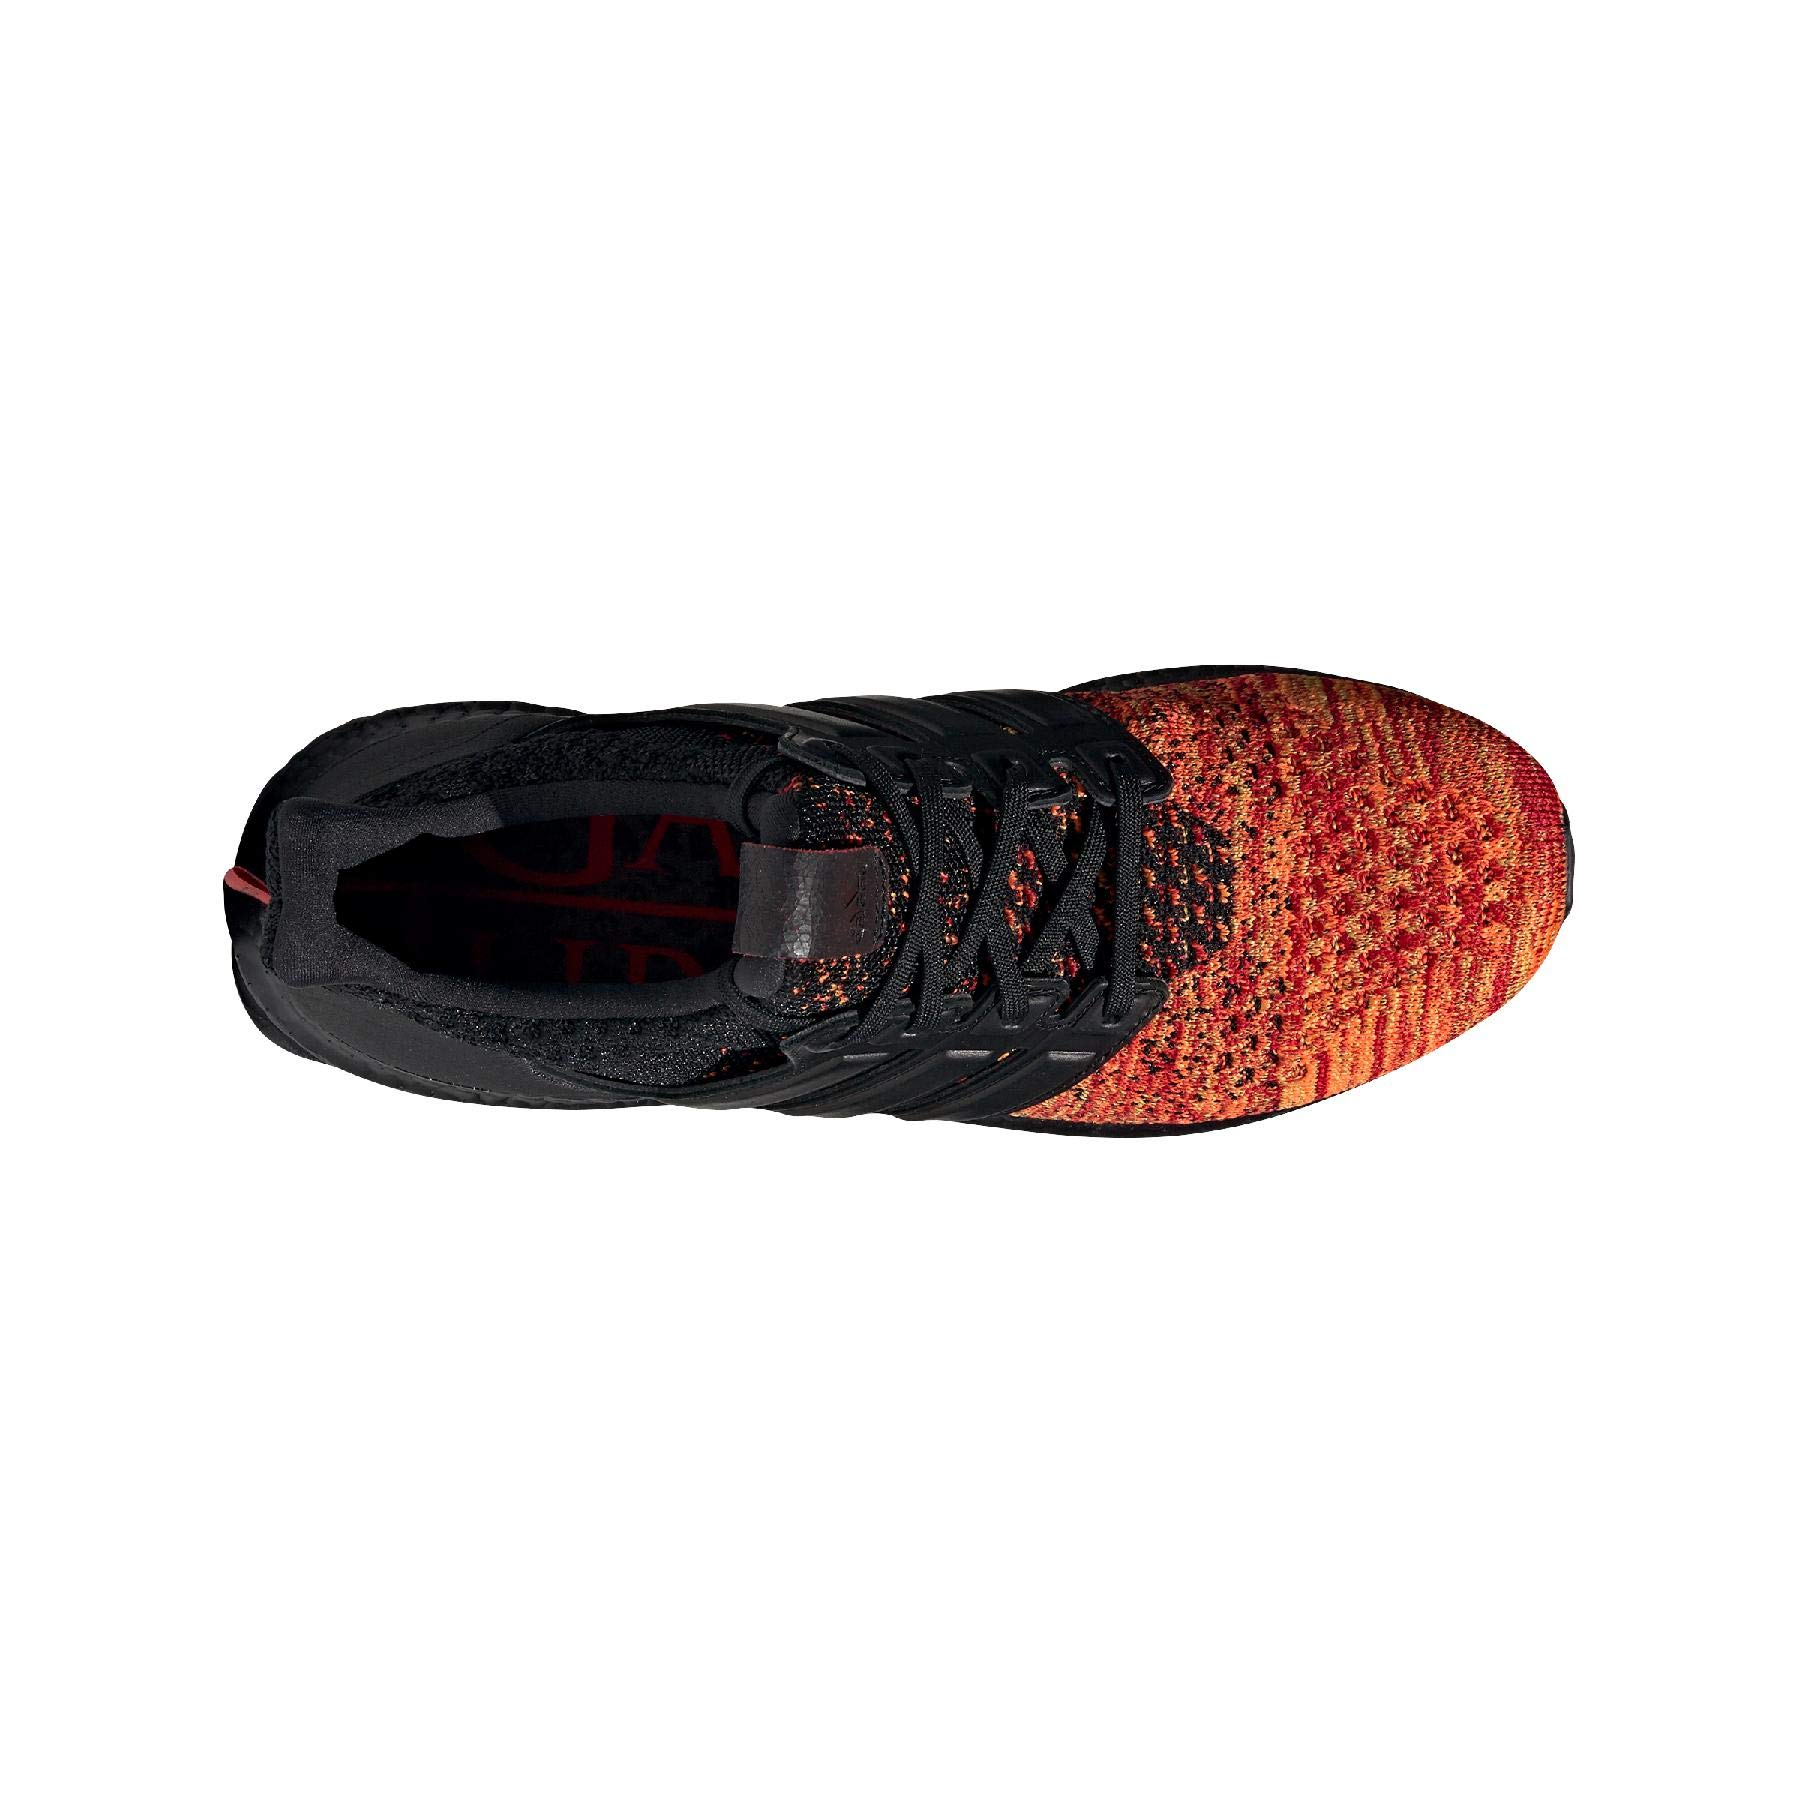 adidas x Game of Thrones Men's Ultraboost Running Shoes, House Targaryen, 8.5 M US by adidas (Image #4)